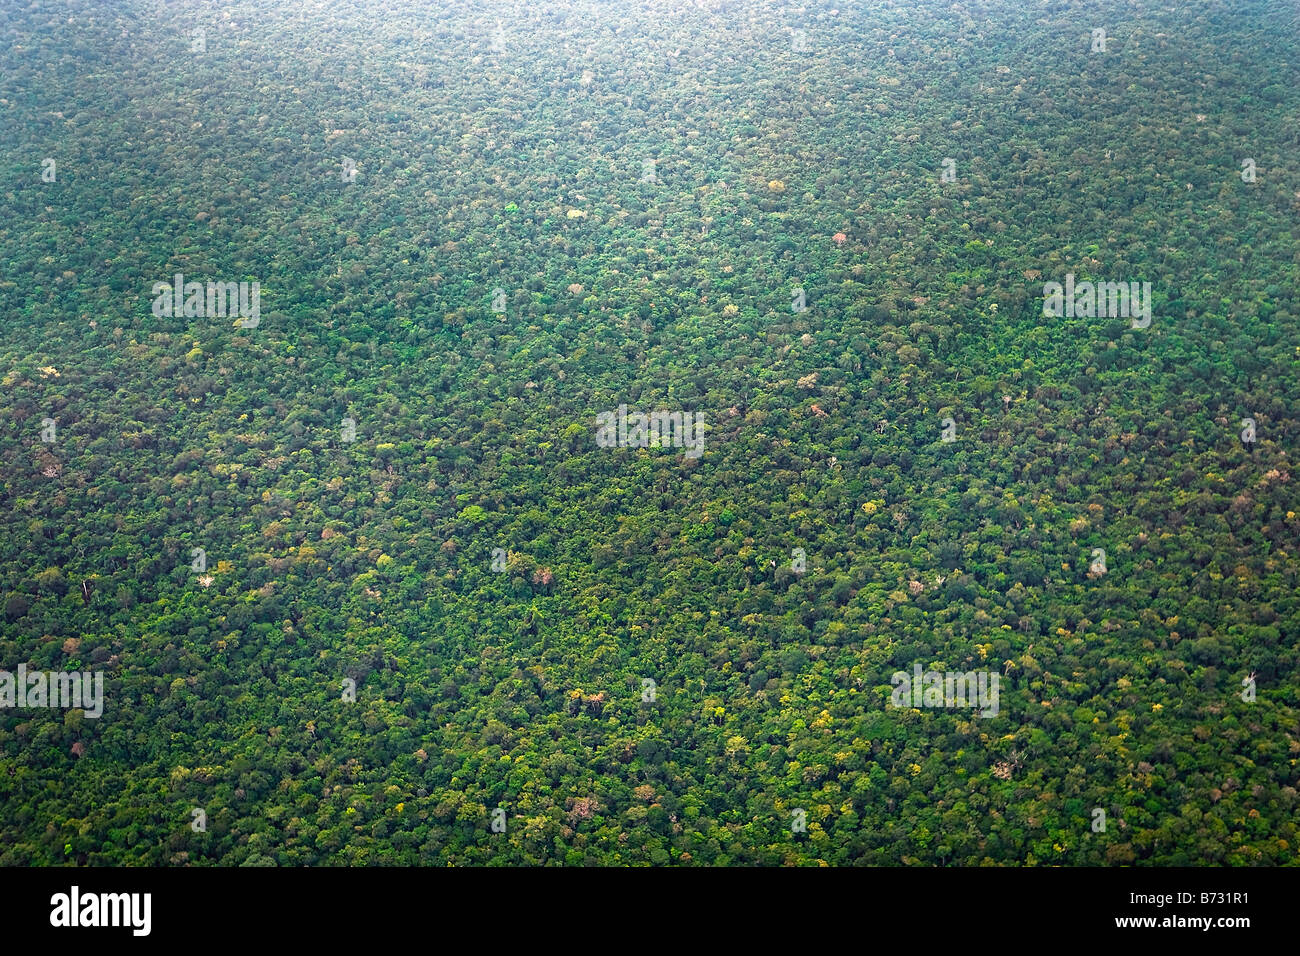 Suriname, Laduani, at the bank of the Boven Suriname river. Aerial of forest. - Stock Image